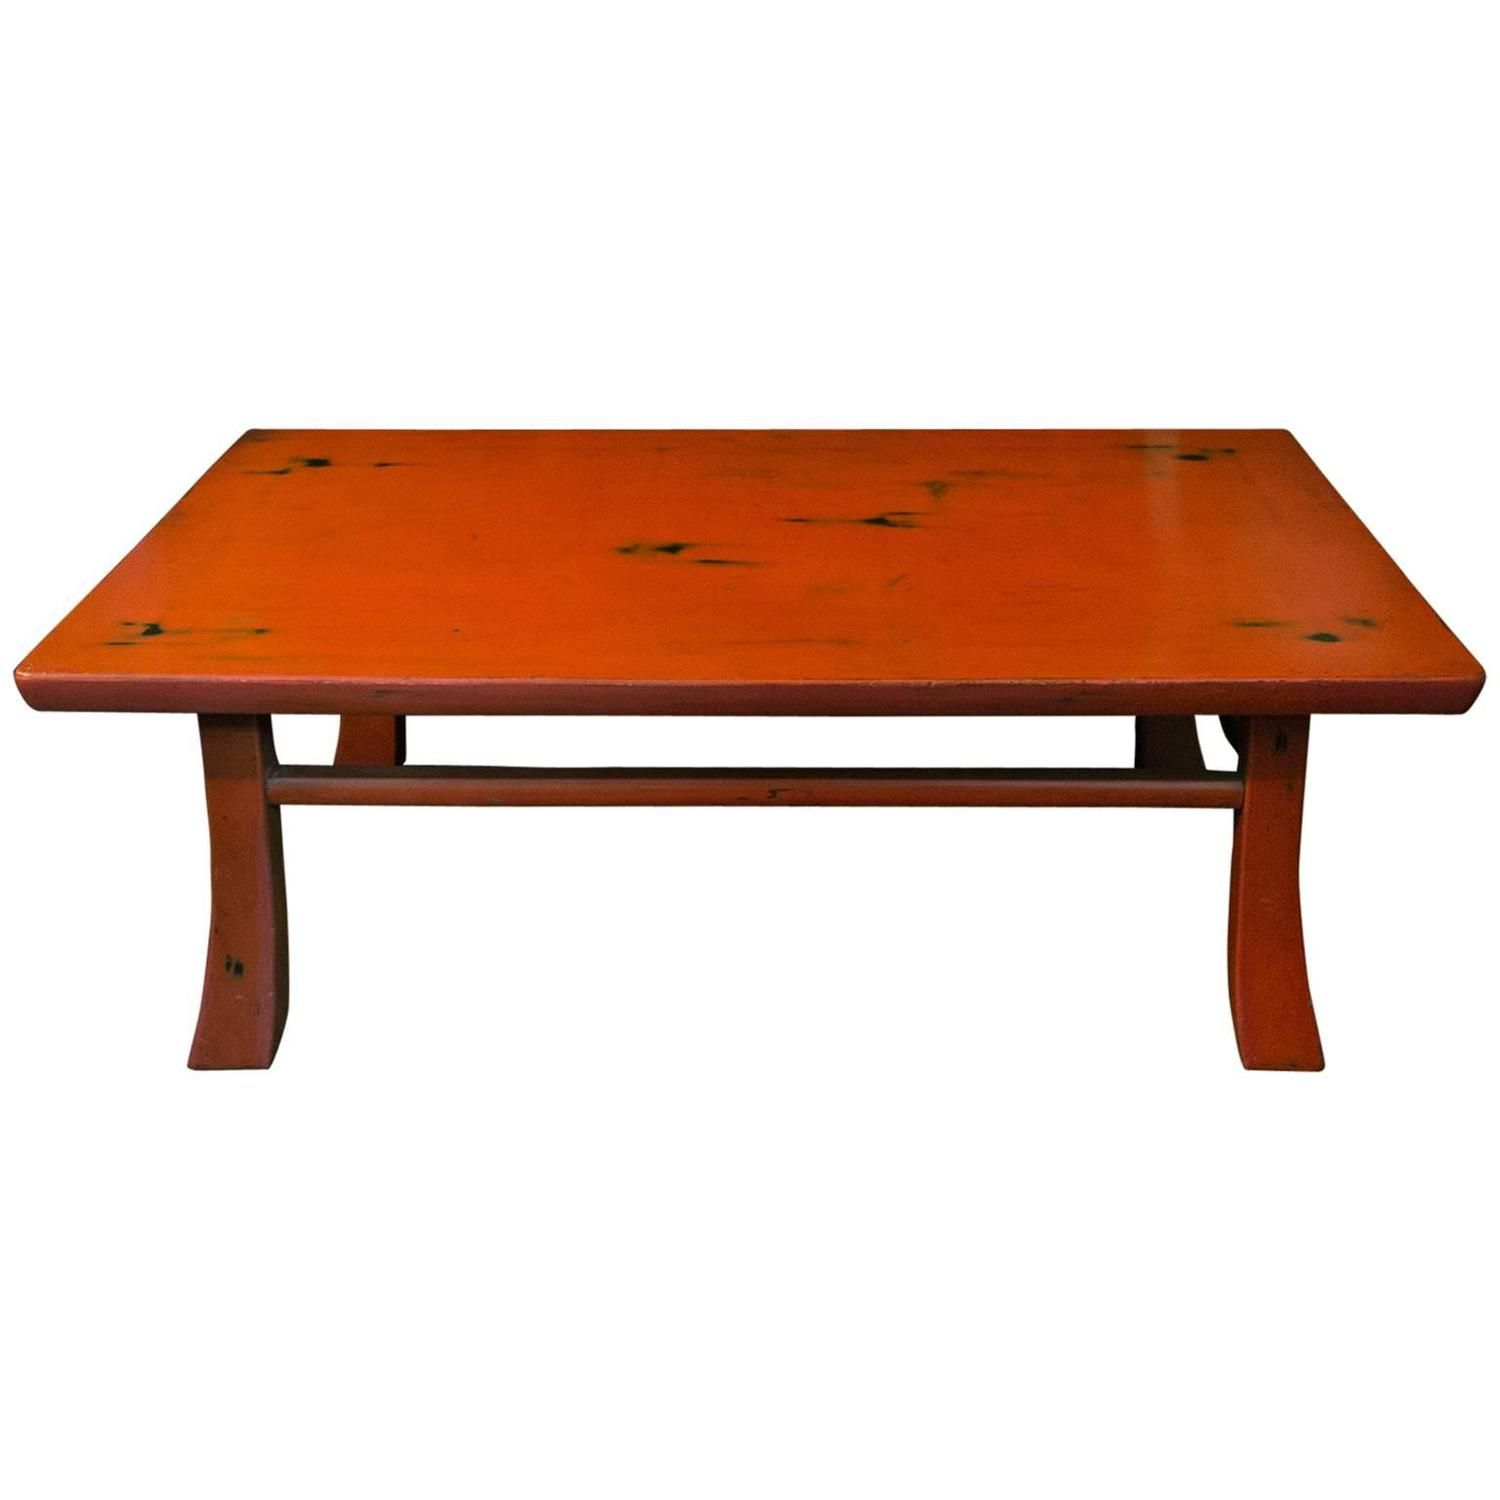 vintage japanese style negoro nuri lacquer low table from a